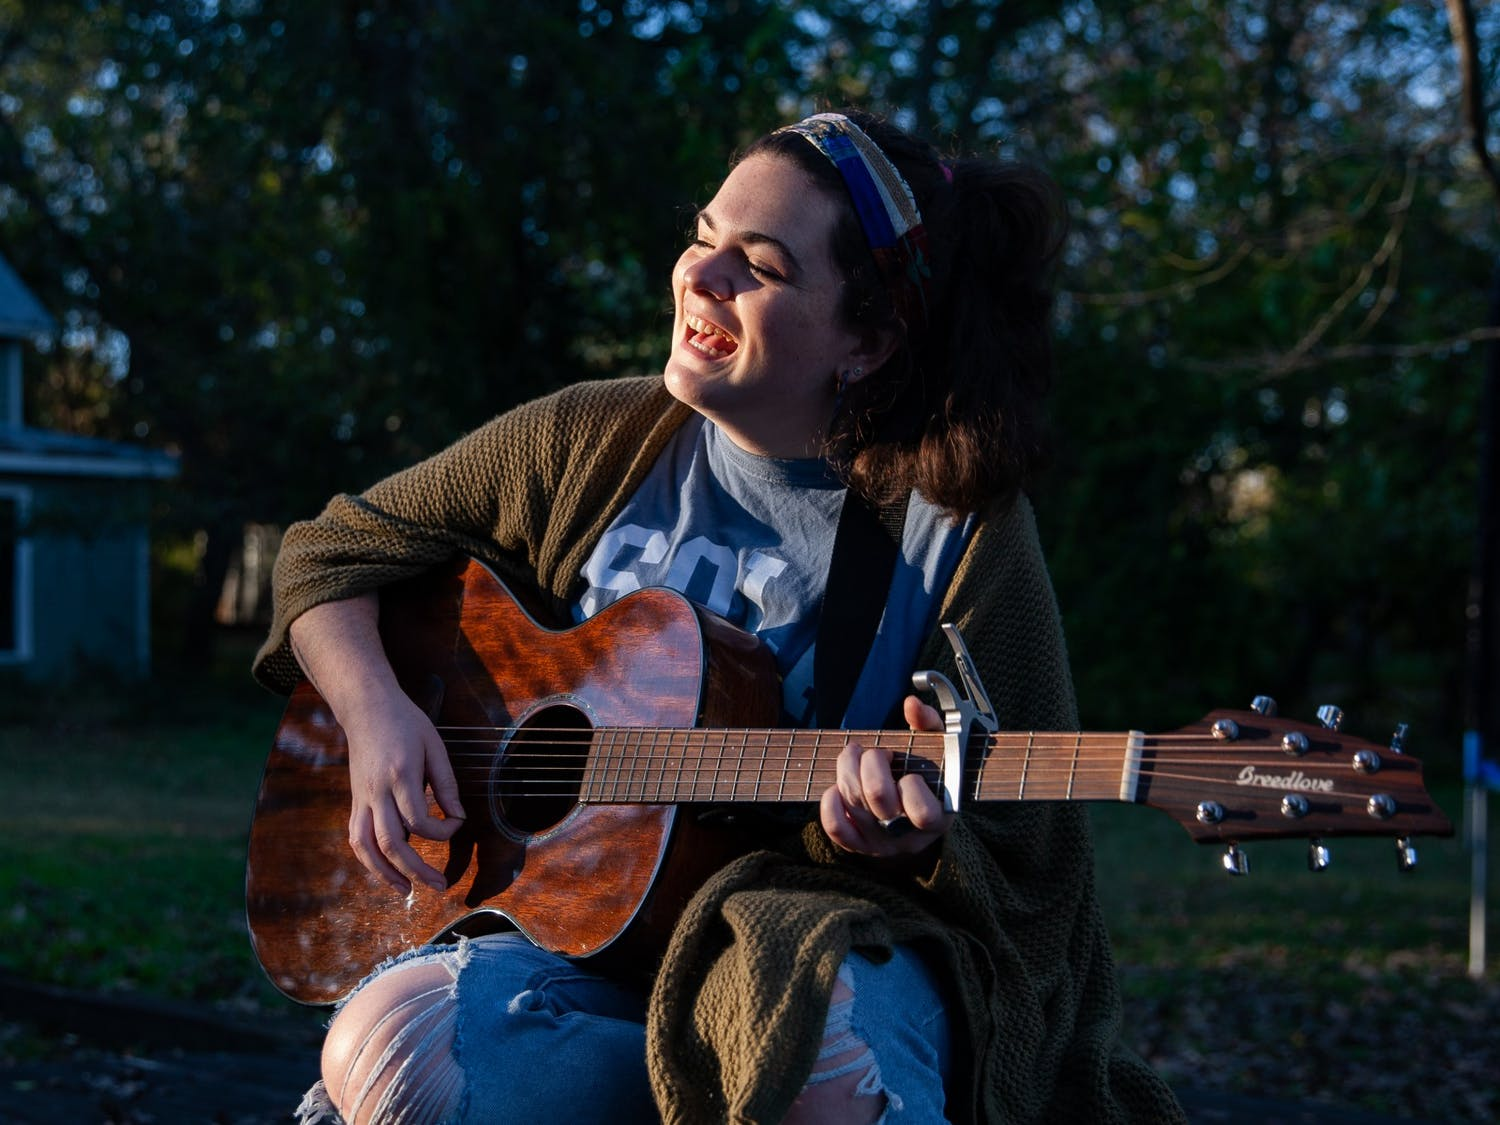 Junior communications major Lizzy Campbell sings and plays her guitar in front of her home on Monday, Nov. 16, 2020. Campbell is one of many UNC musicians who turned to online platforms to perform in 2020.